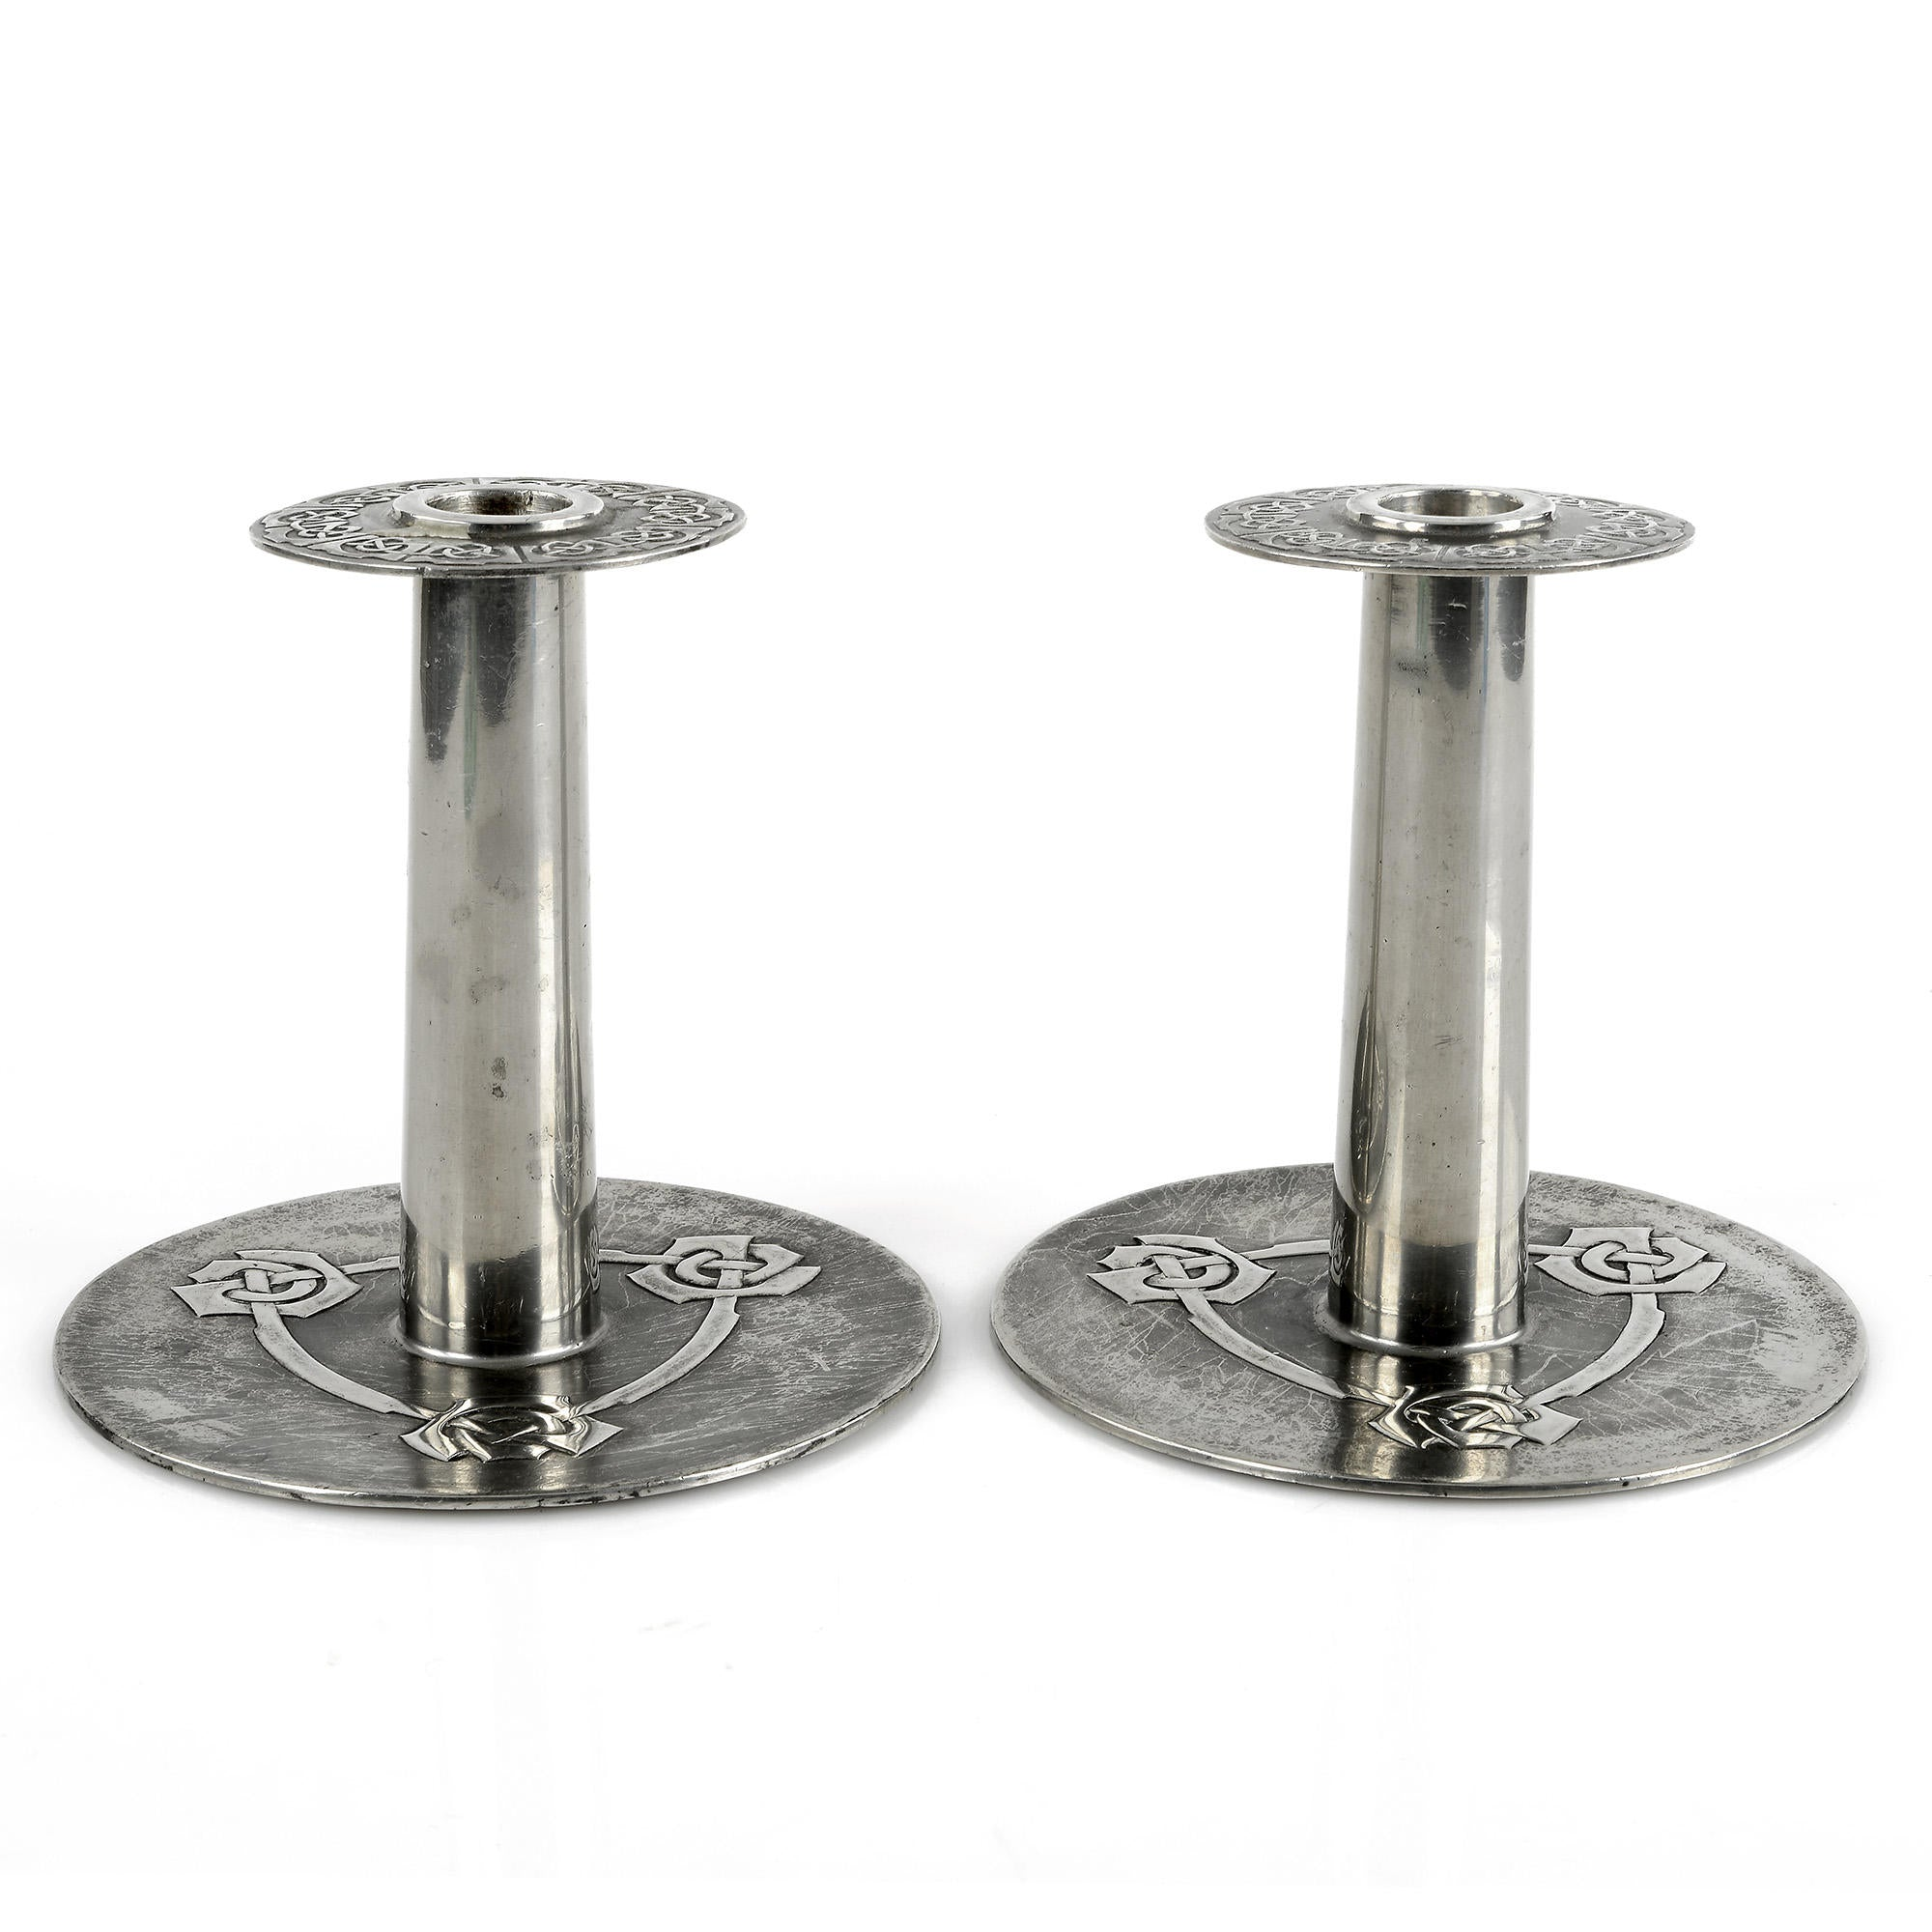 Paret Liberty & Co Tudric tennljusstakar av Archibald Knox i Keltisk stil. H: 15,5cm. Märkta Tudric 08. Pair of Liberty & Co Tudric pewter candle sticks by Archibald Knox with Celtic knot frieze. H: 15,5cm/6,1